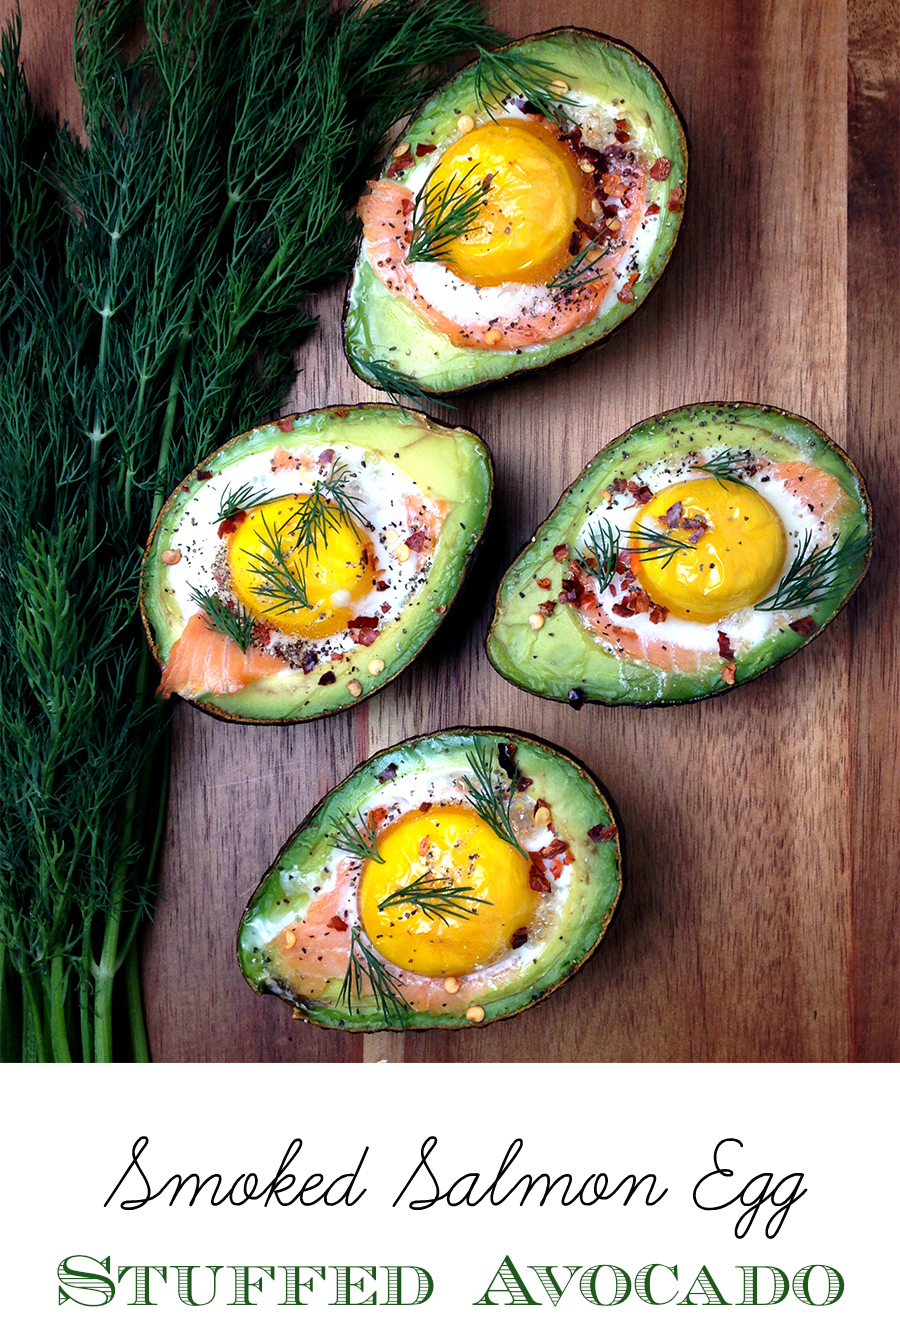 Smoked-Salmon-Avocado-Full-Text